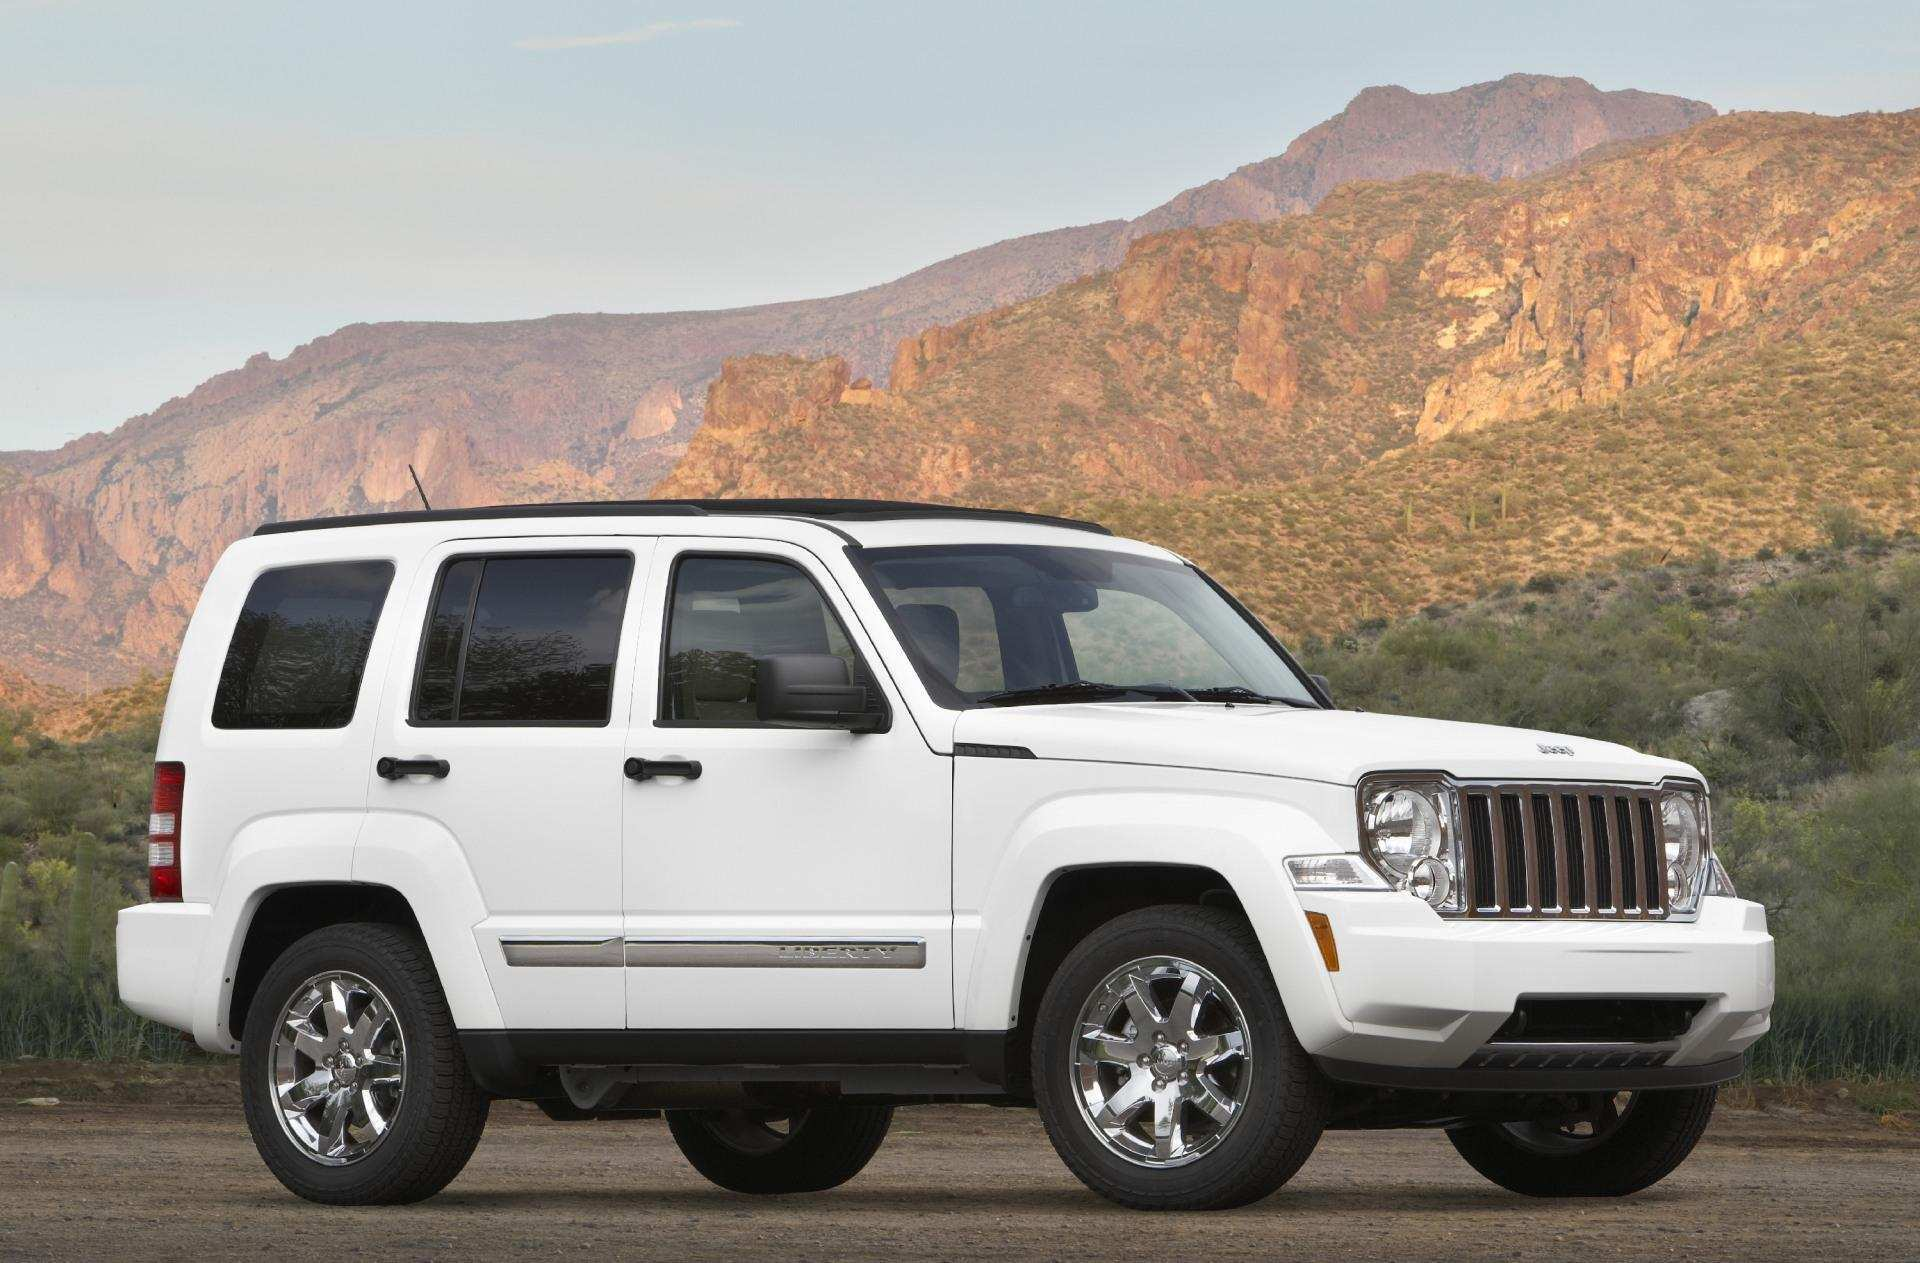 89 Great 2020 Jeep Liberty Review for 2020 Jeep Liberty